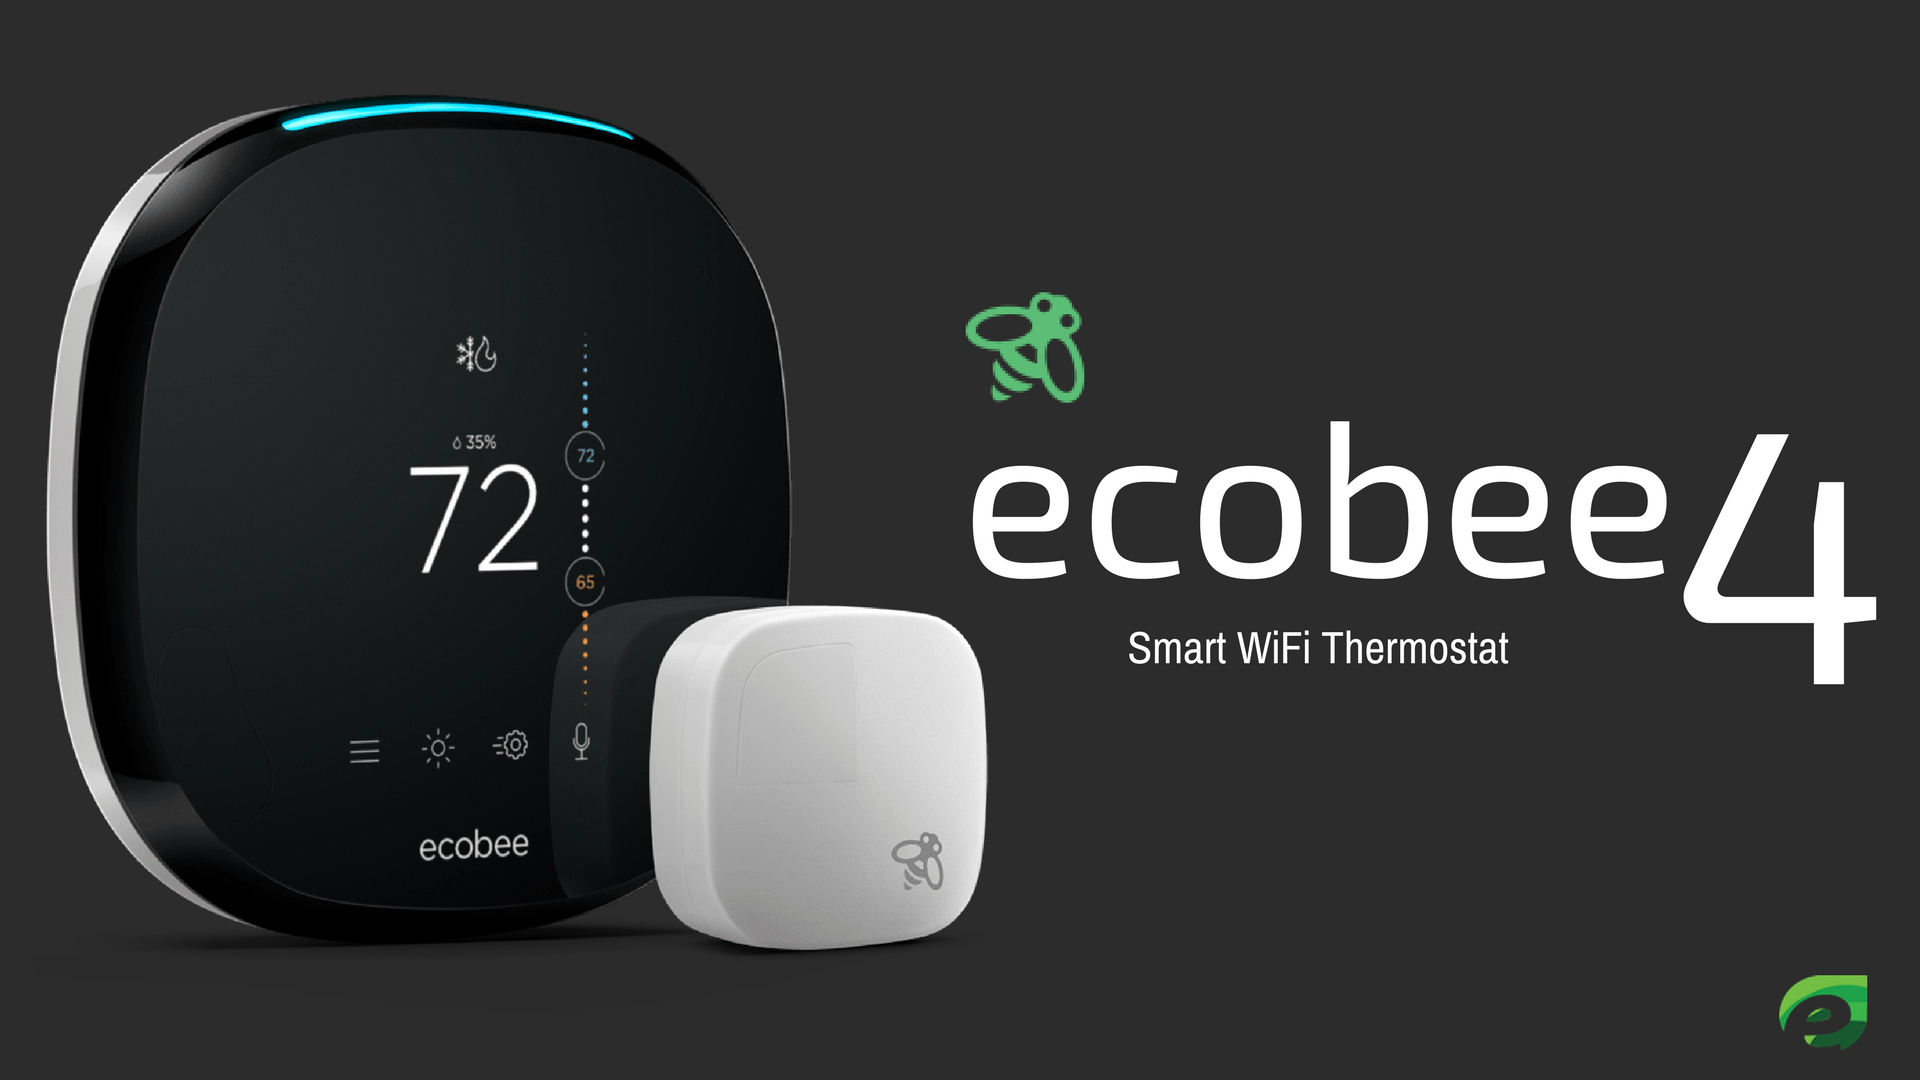 Ecobee and alexa electronic hand soap dispenser